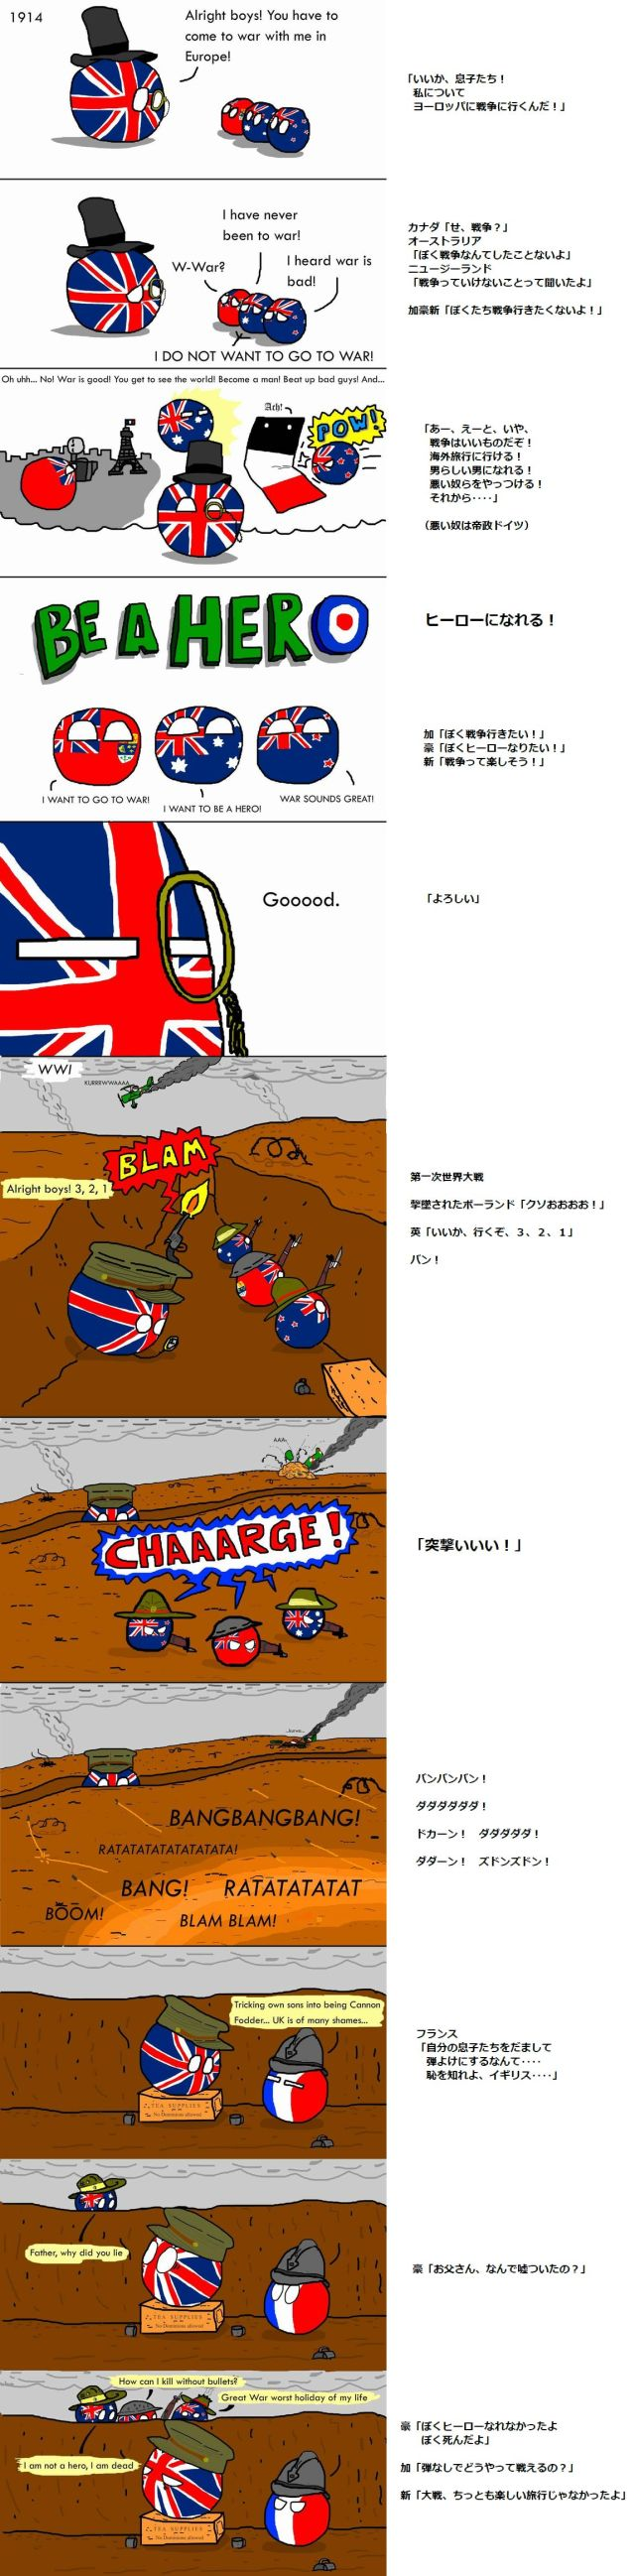 Polandball-UK18